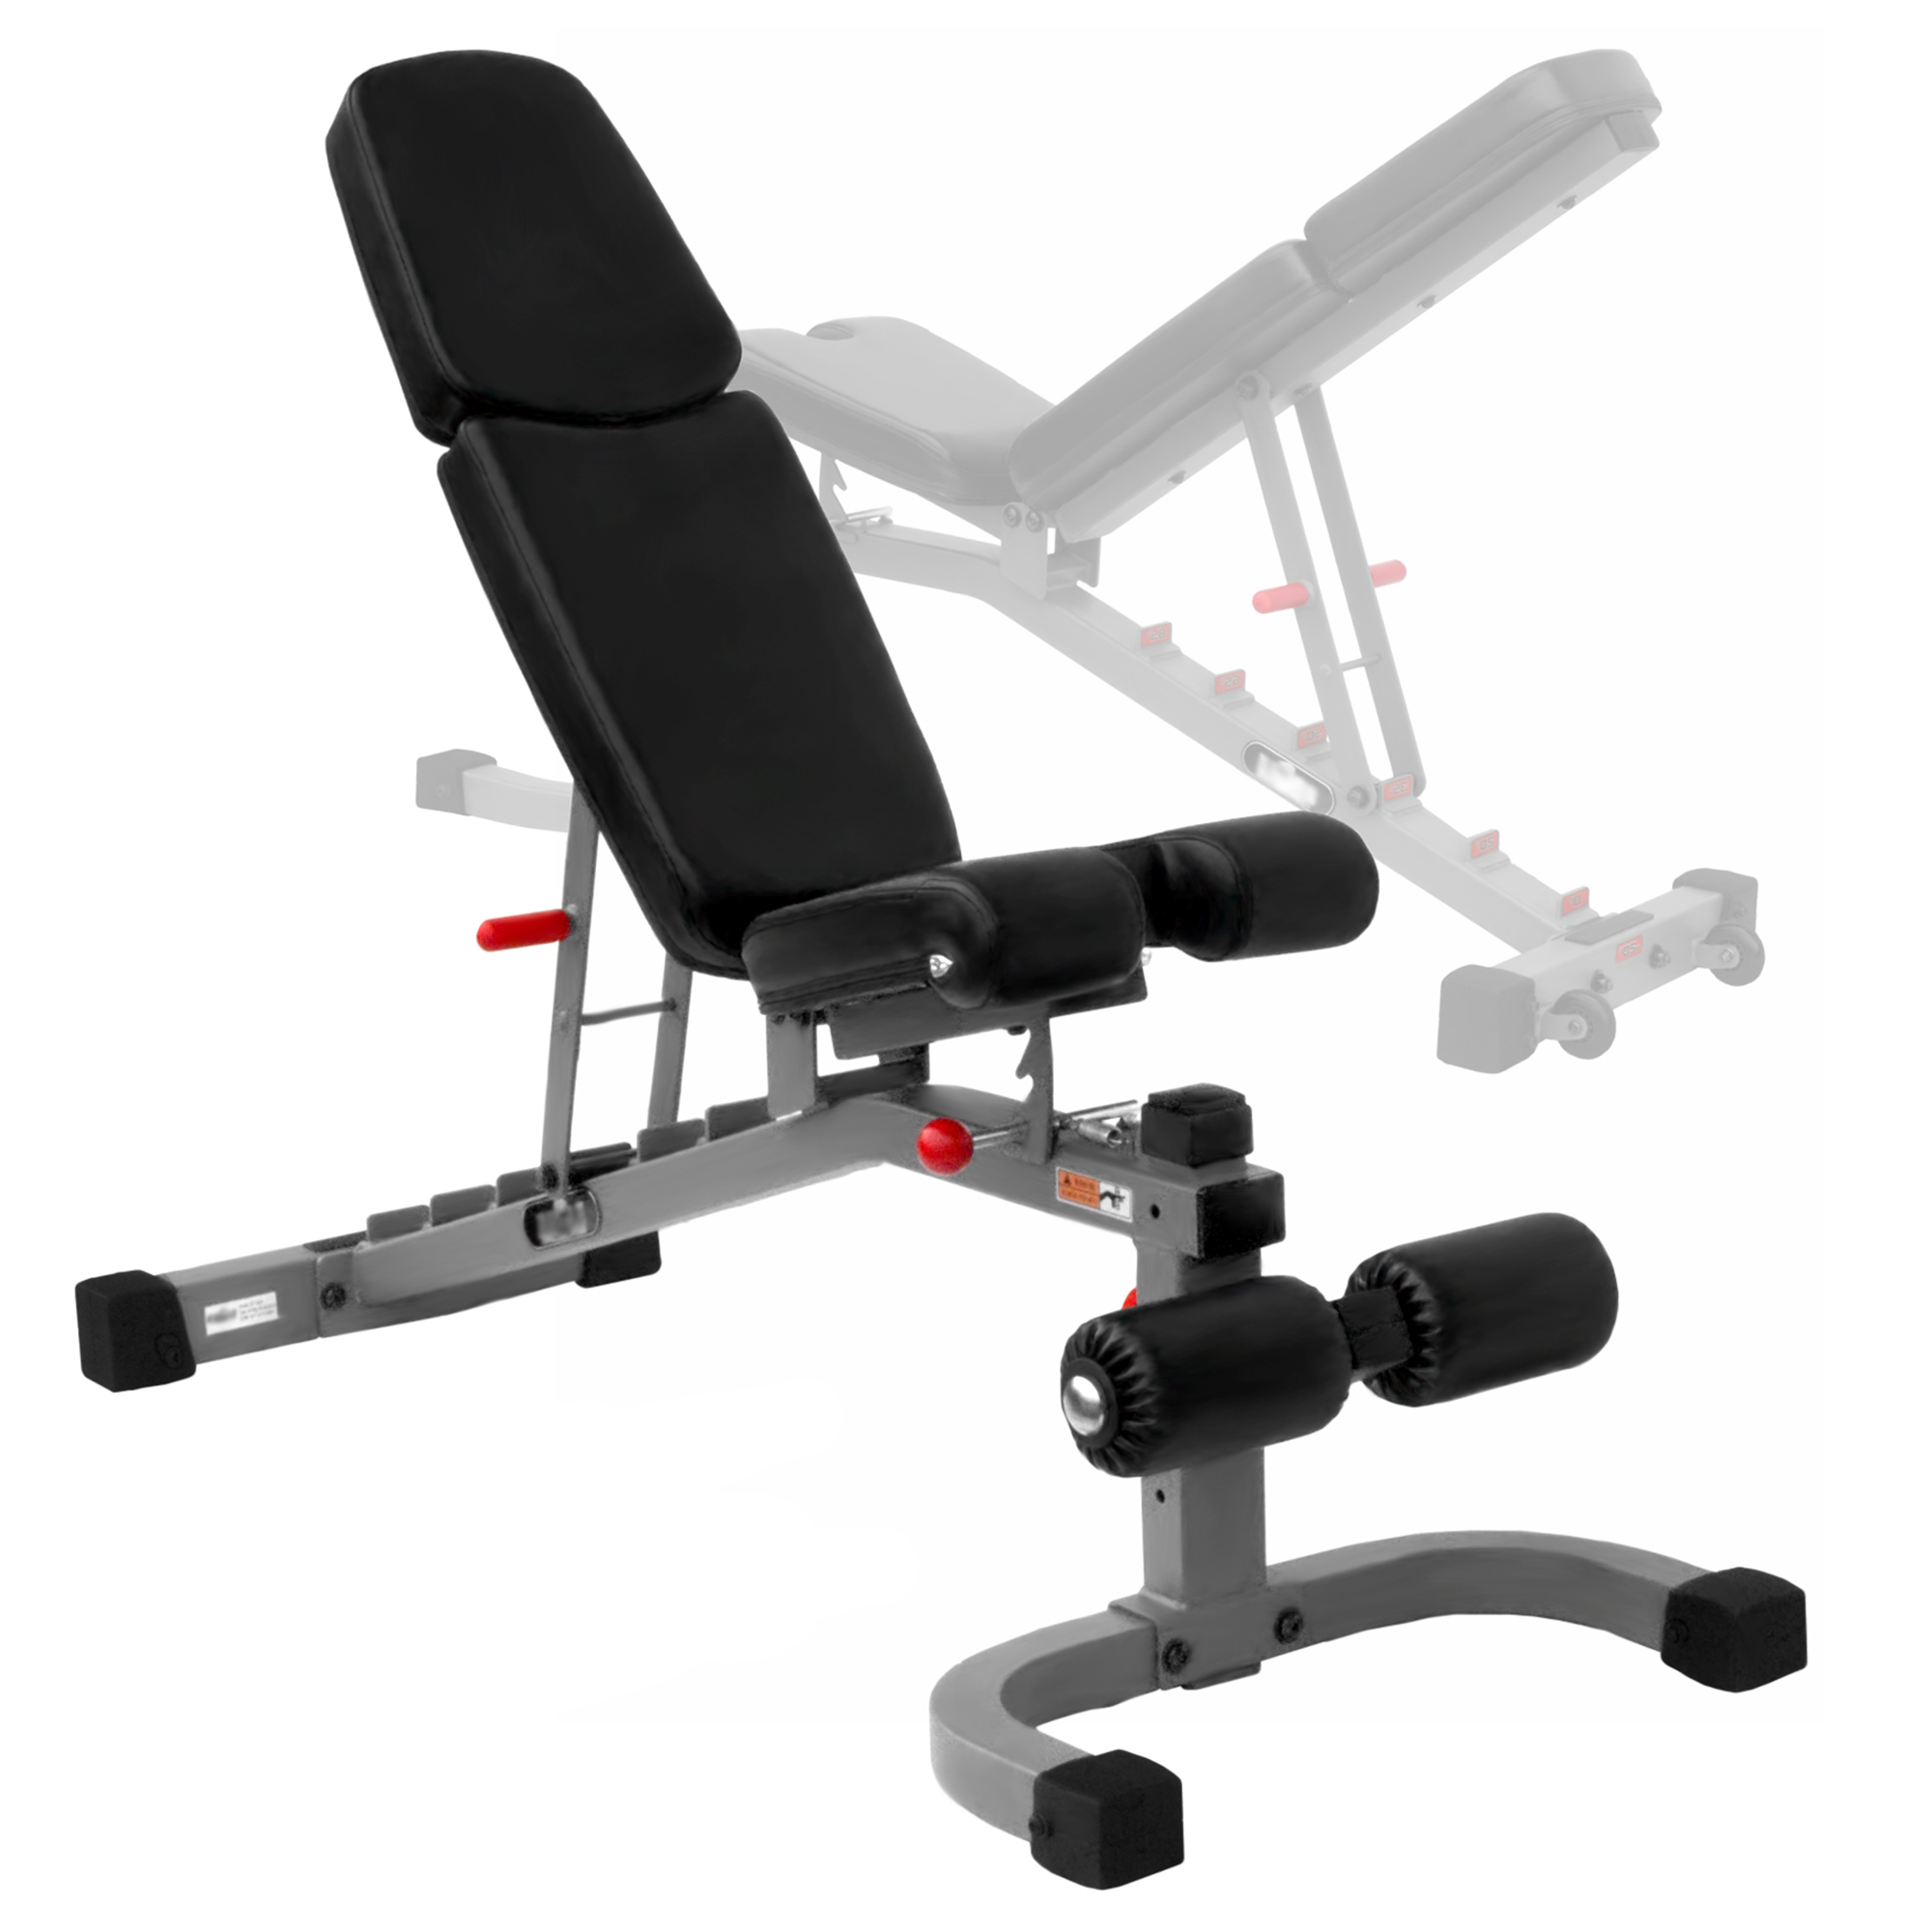 The X Mark Fid Flat Incline Decline Weight Bench Gray